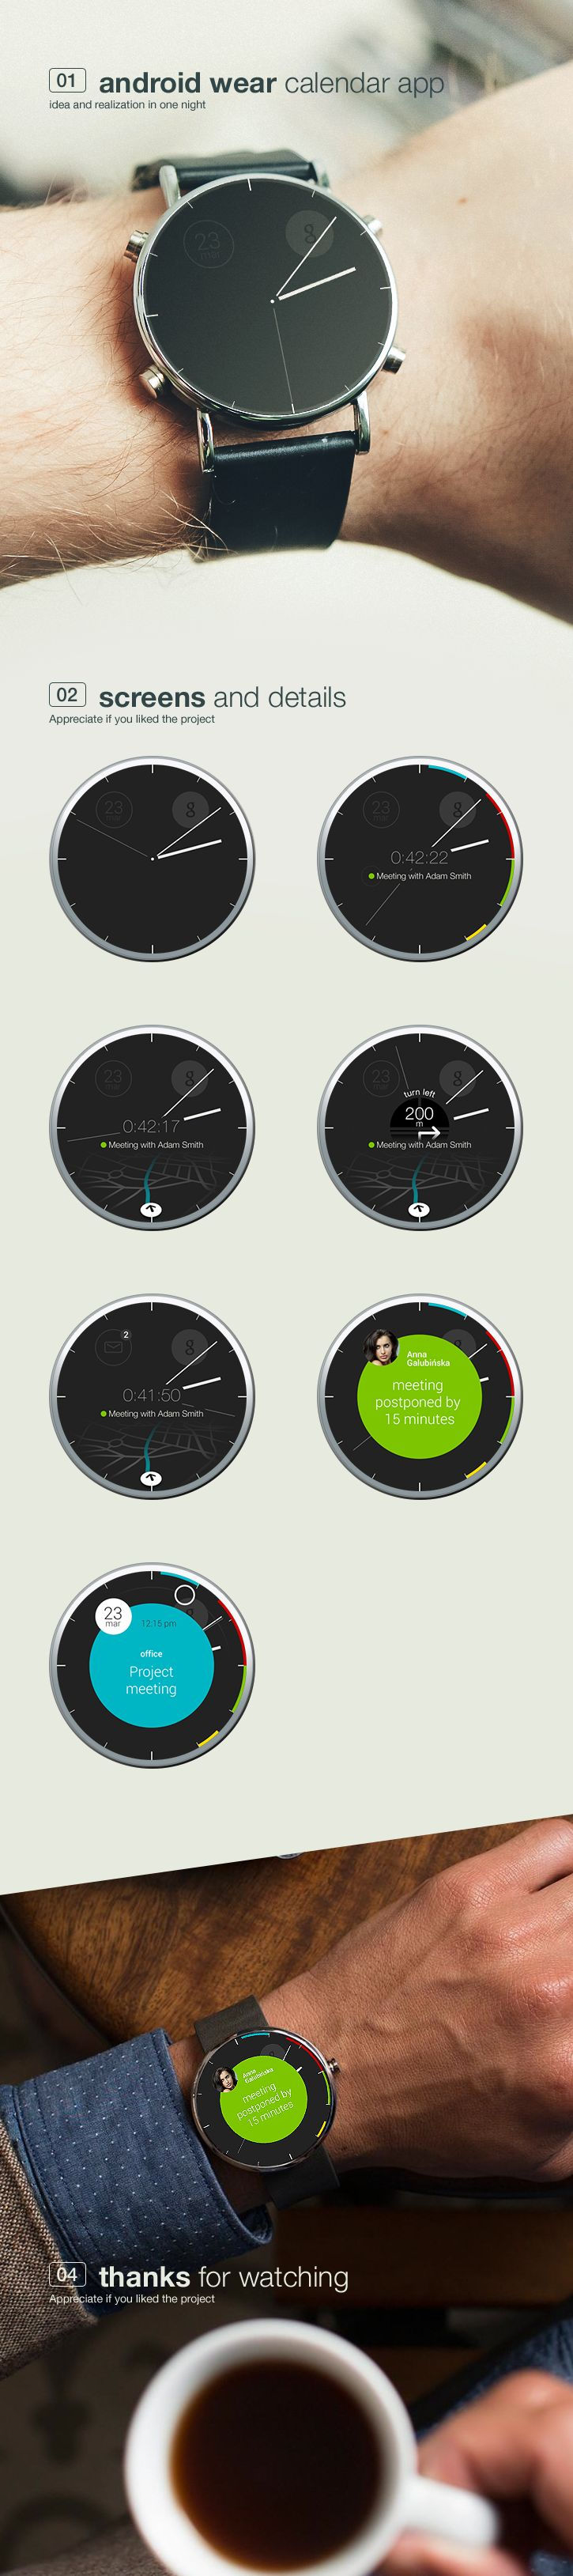 https://www.behance.net/gallery/calendar-clock-android-wear-concept-app/15662143